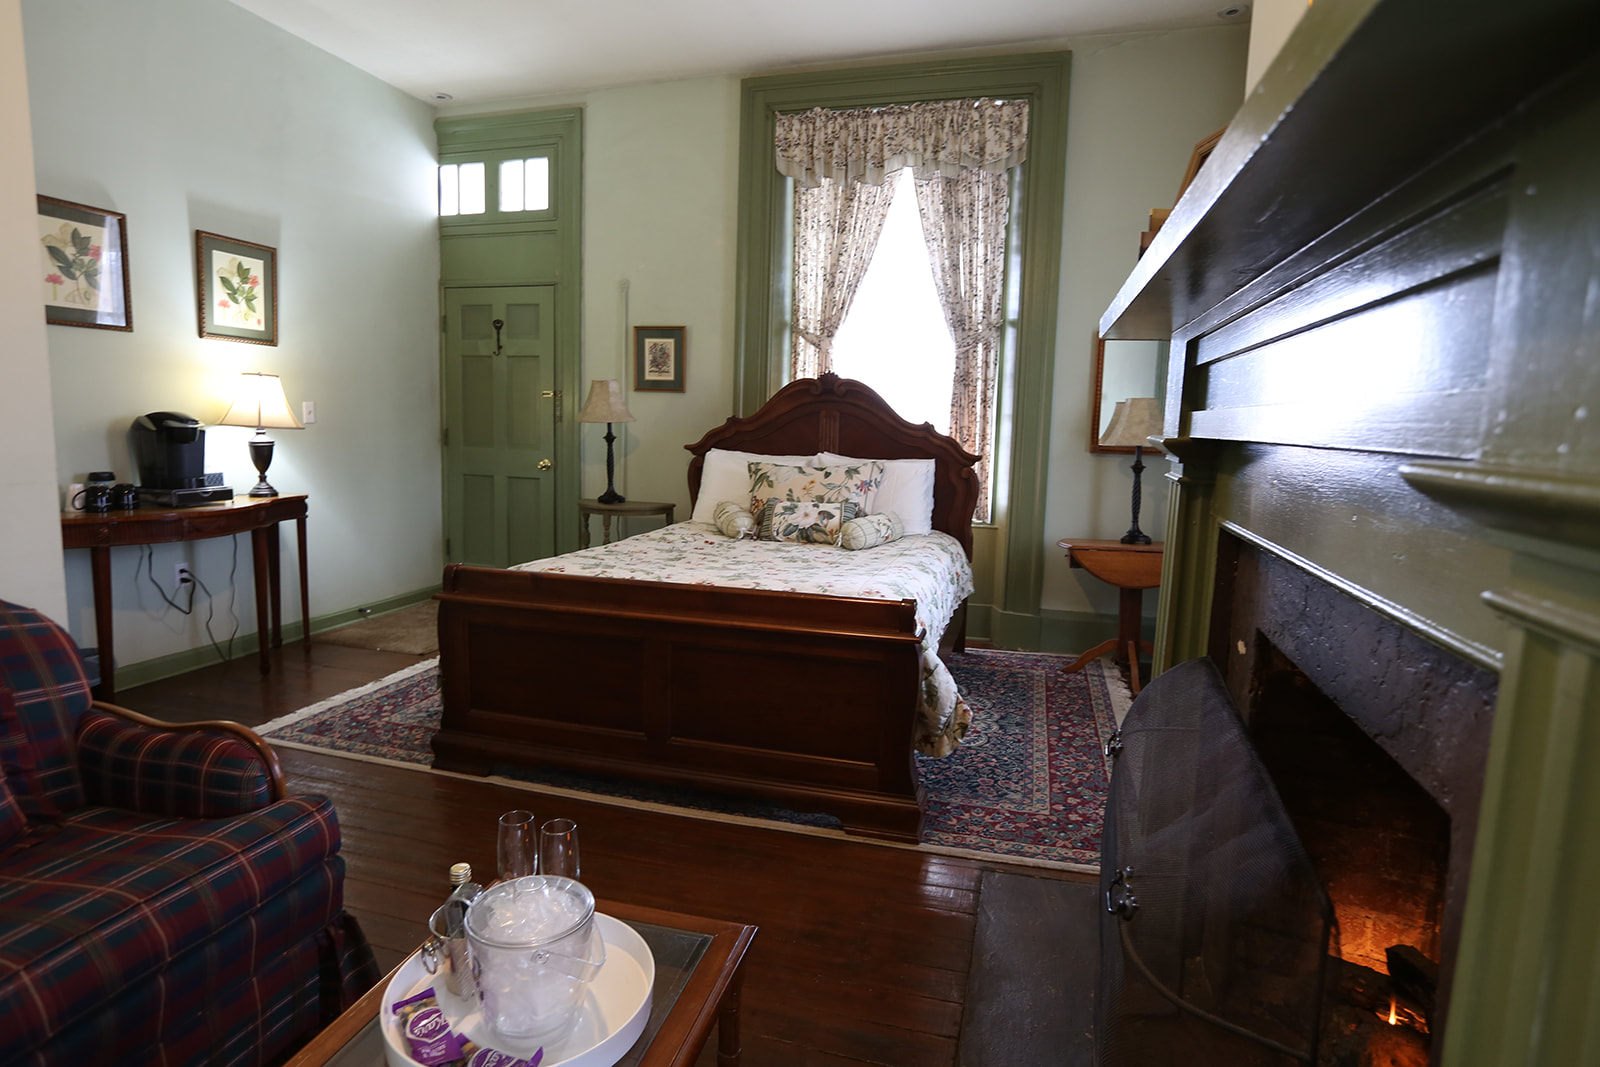 the Monroe Suite room with a bed, fireplace, couch, lamps and a keurig machine